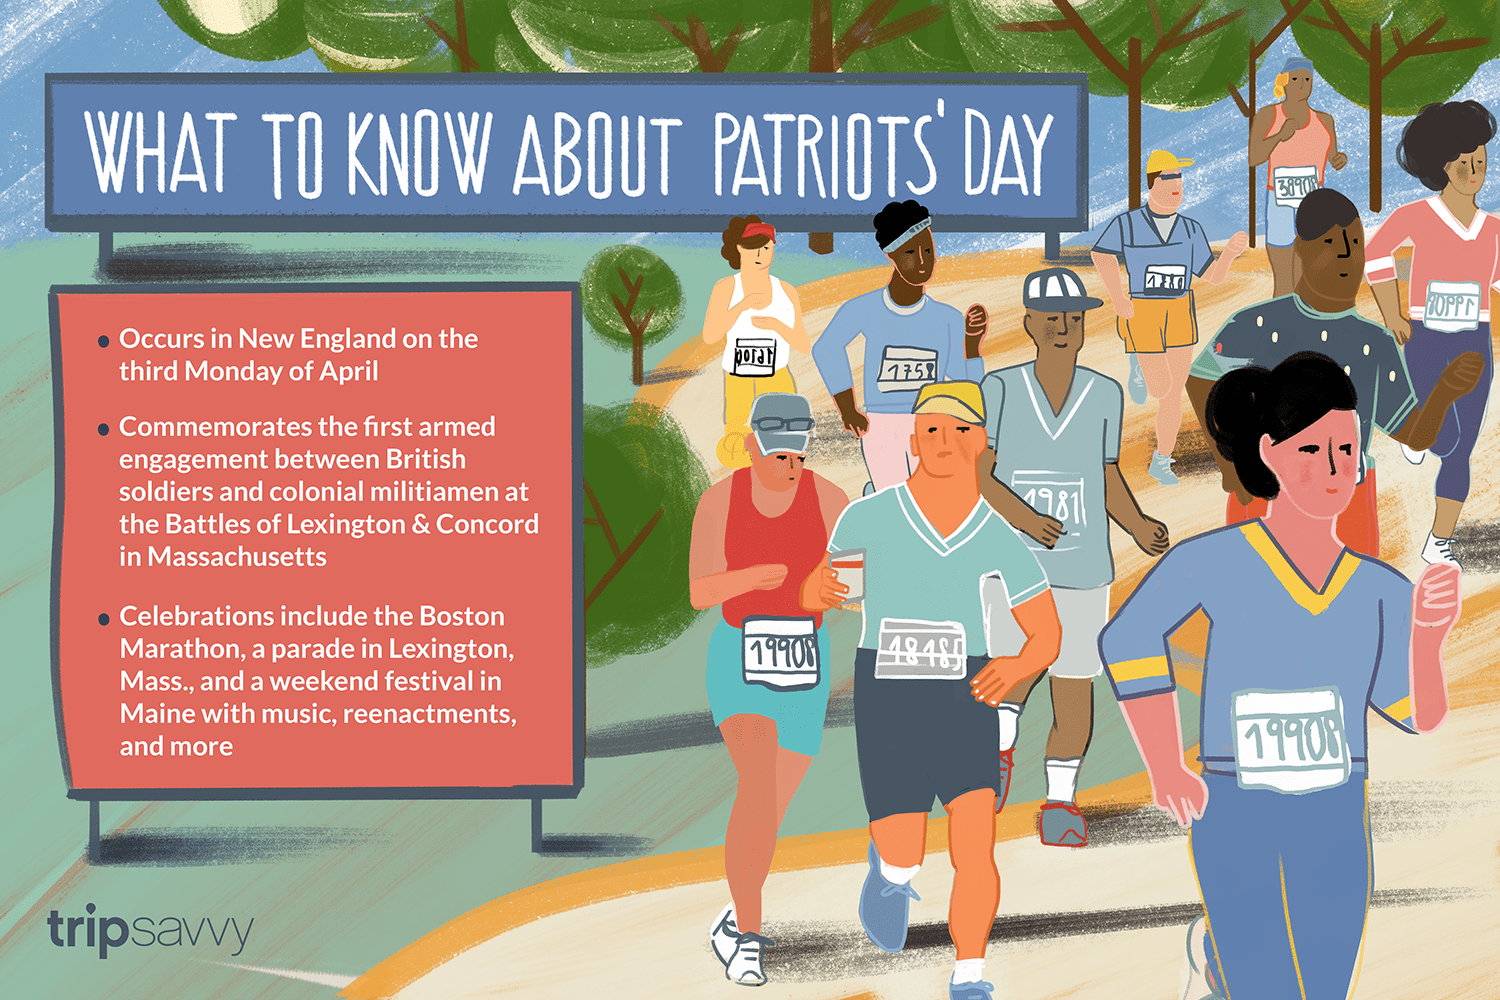 New England Marathons 2020 When is Patriots' Day? Date & Events for 2019 & Beyond